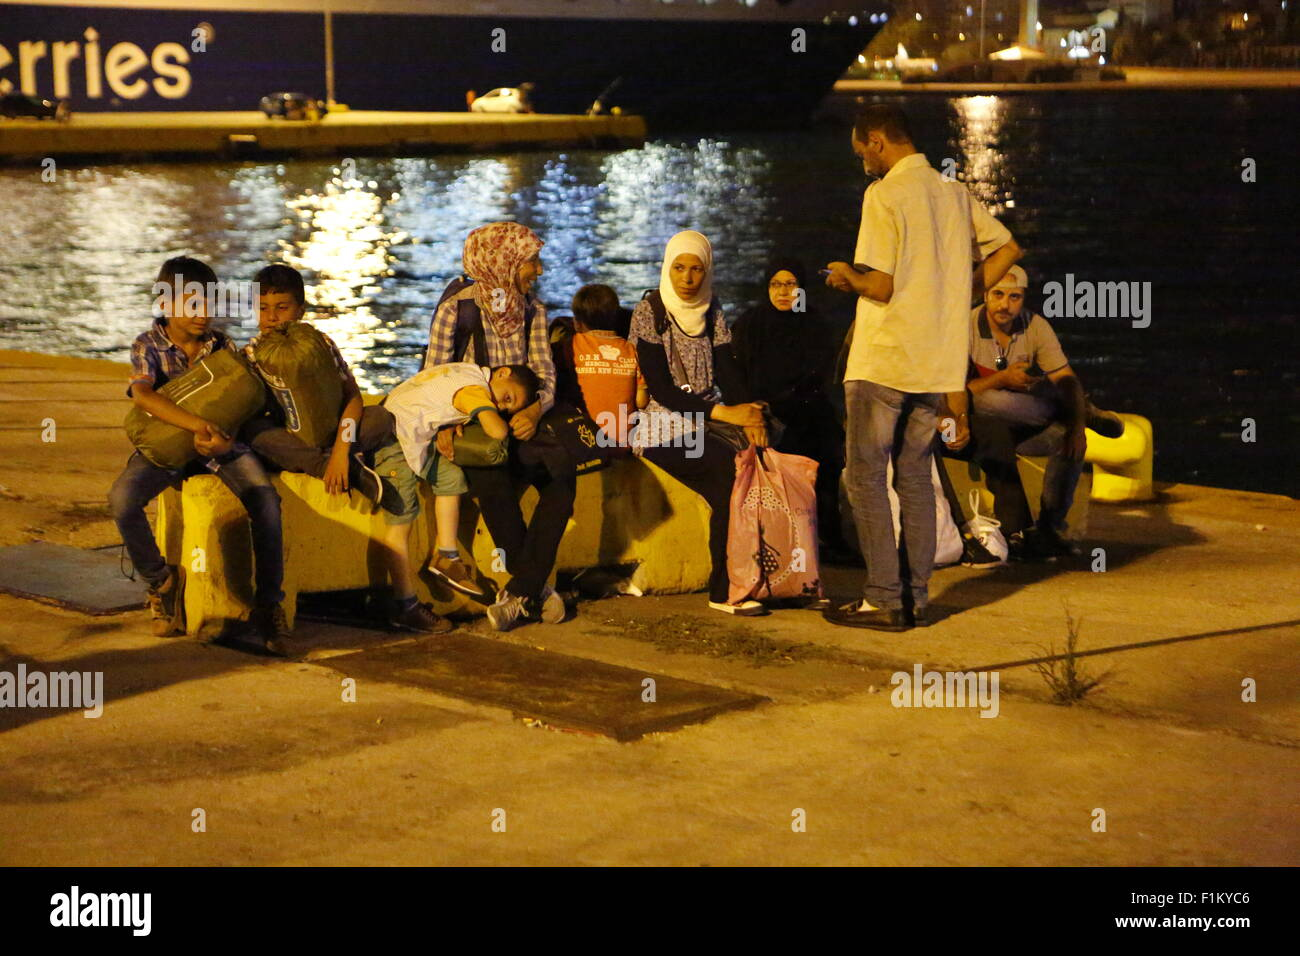 Athens, Greece. 3rd September 2015. Refugees sit on some stones on the quays of Piraeus Harbour, waiting for the bus to carry them to the train station. Thousands of refugees arrived in Piraeus Harbour on board the government chartered Tera Jet ferry from the Greek Island of Lesbos. Hundreds of refugees, mostly from Syria and Afghanistan arrive on the Greek Islands every week, adding to the already number of thousands of refugees already on the Greek Islands. Credit:  Michael Debets/Alamy Live News Stock Photo